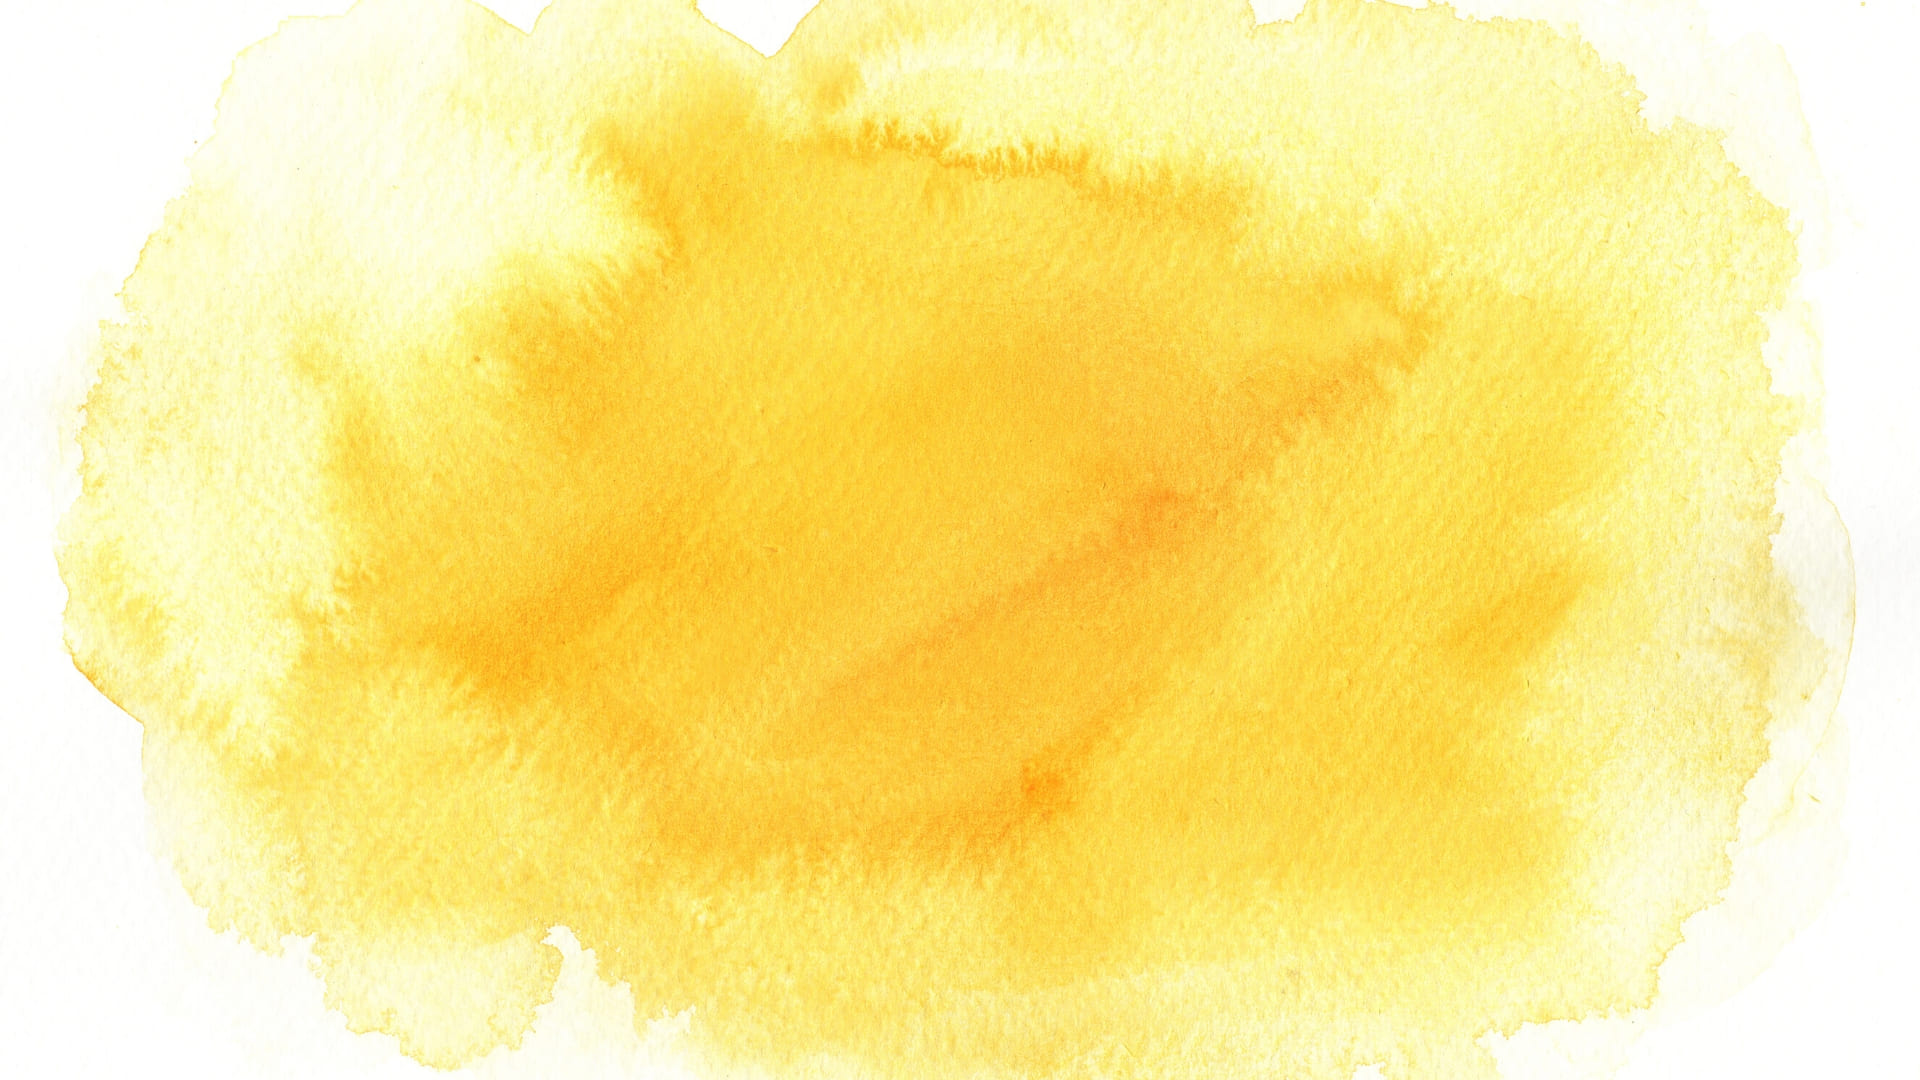 Background yellow abstract